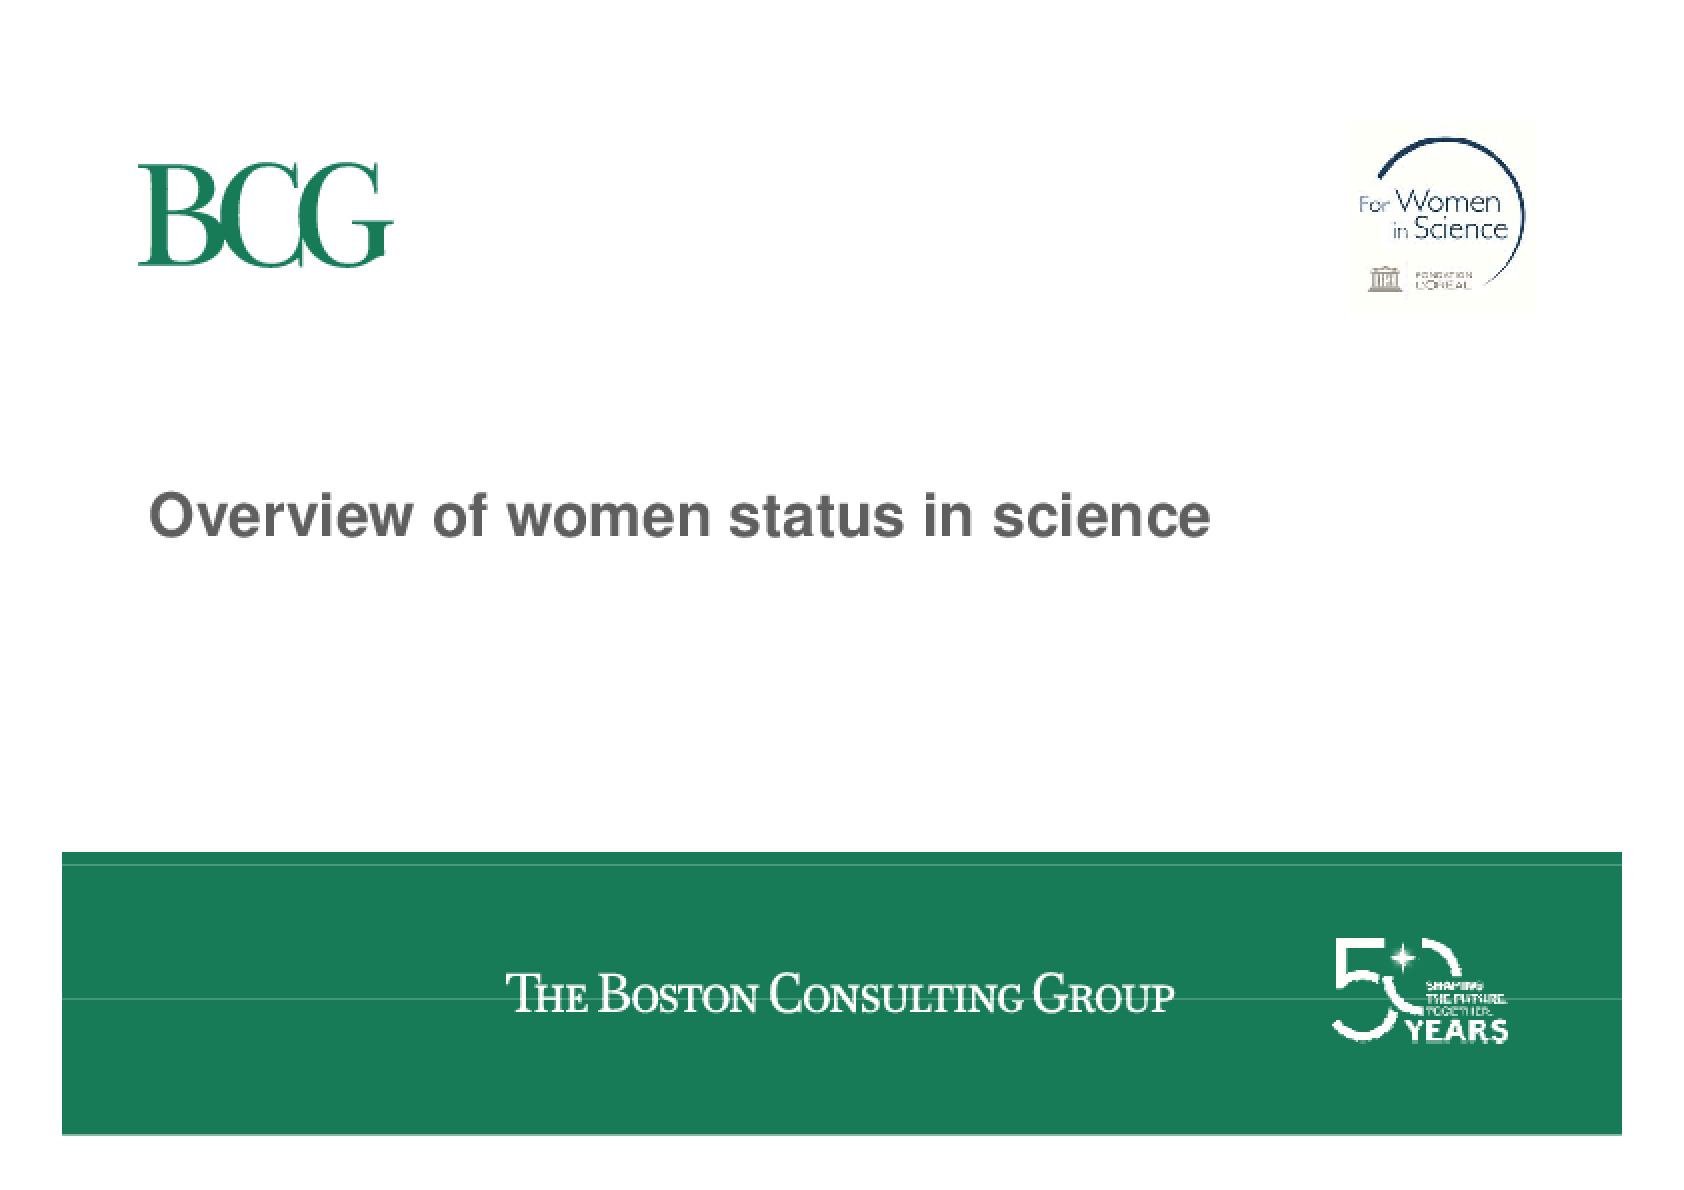 Overview of Women Status in Science